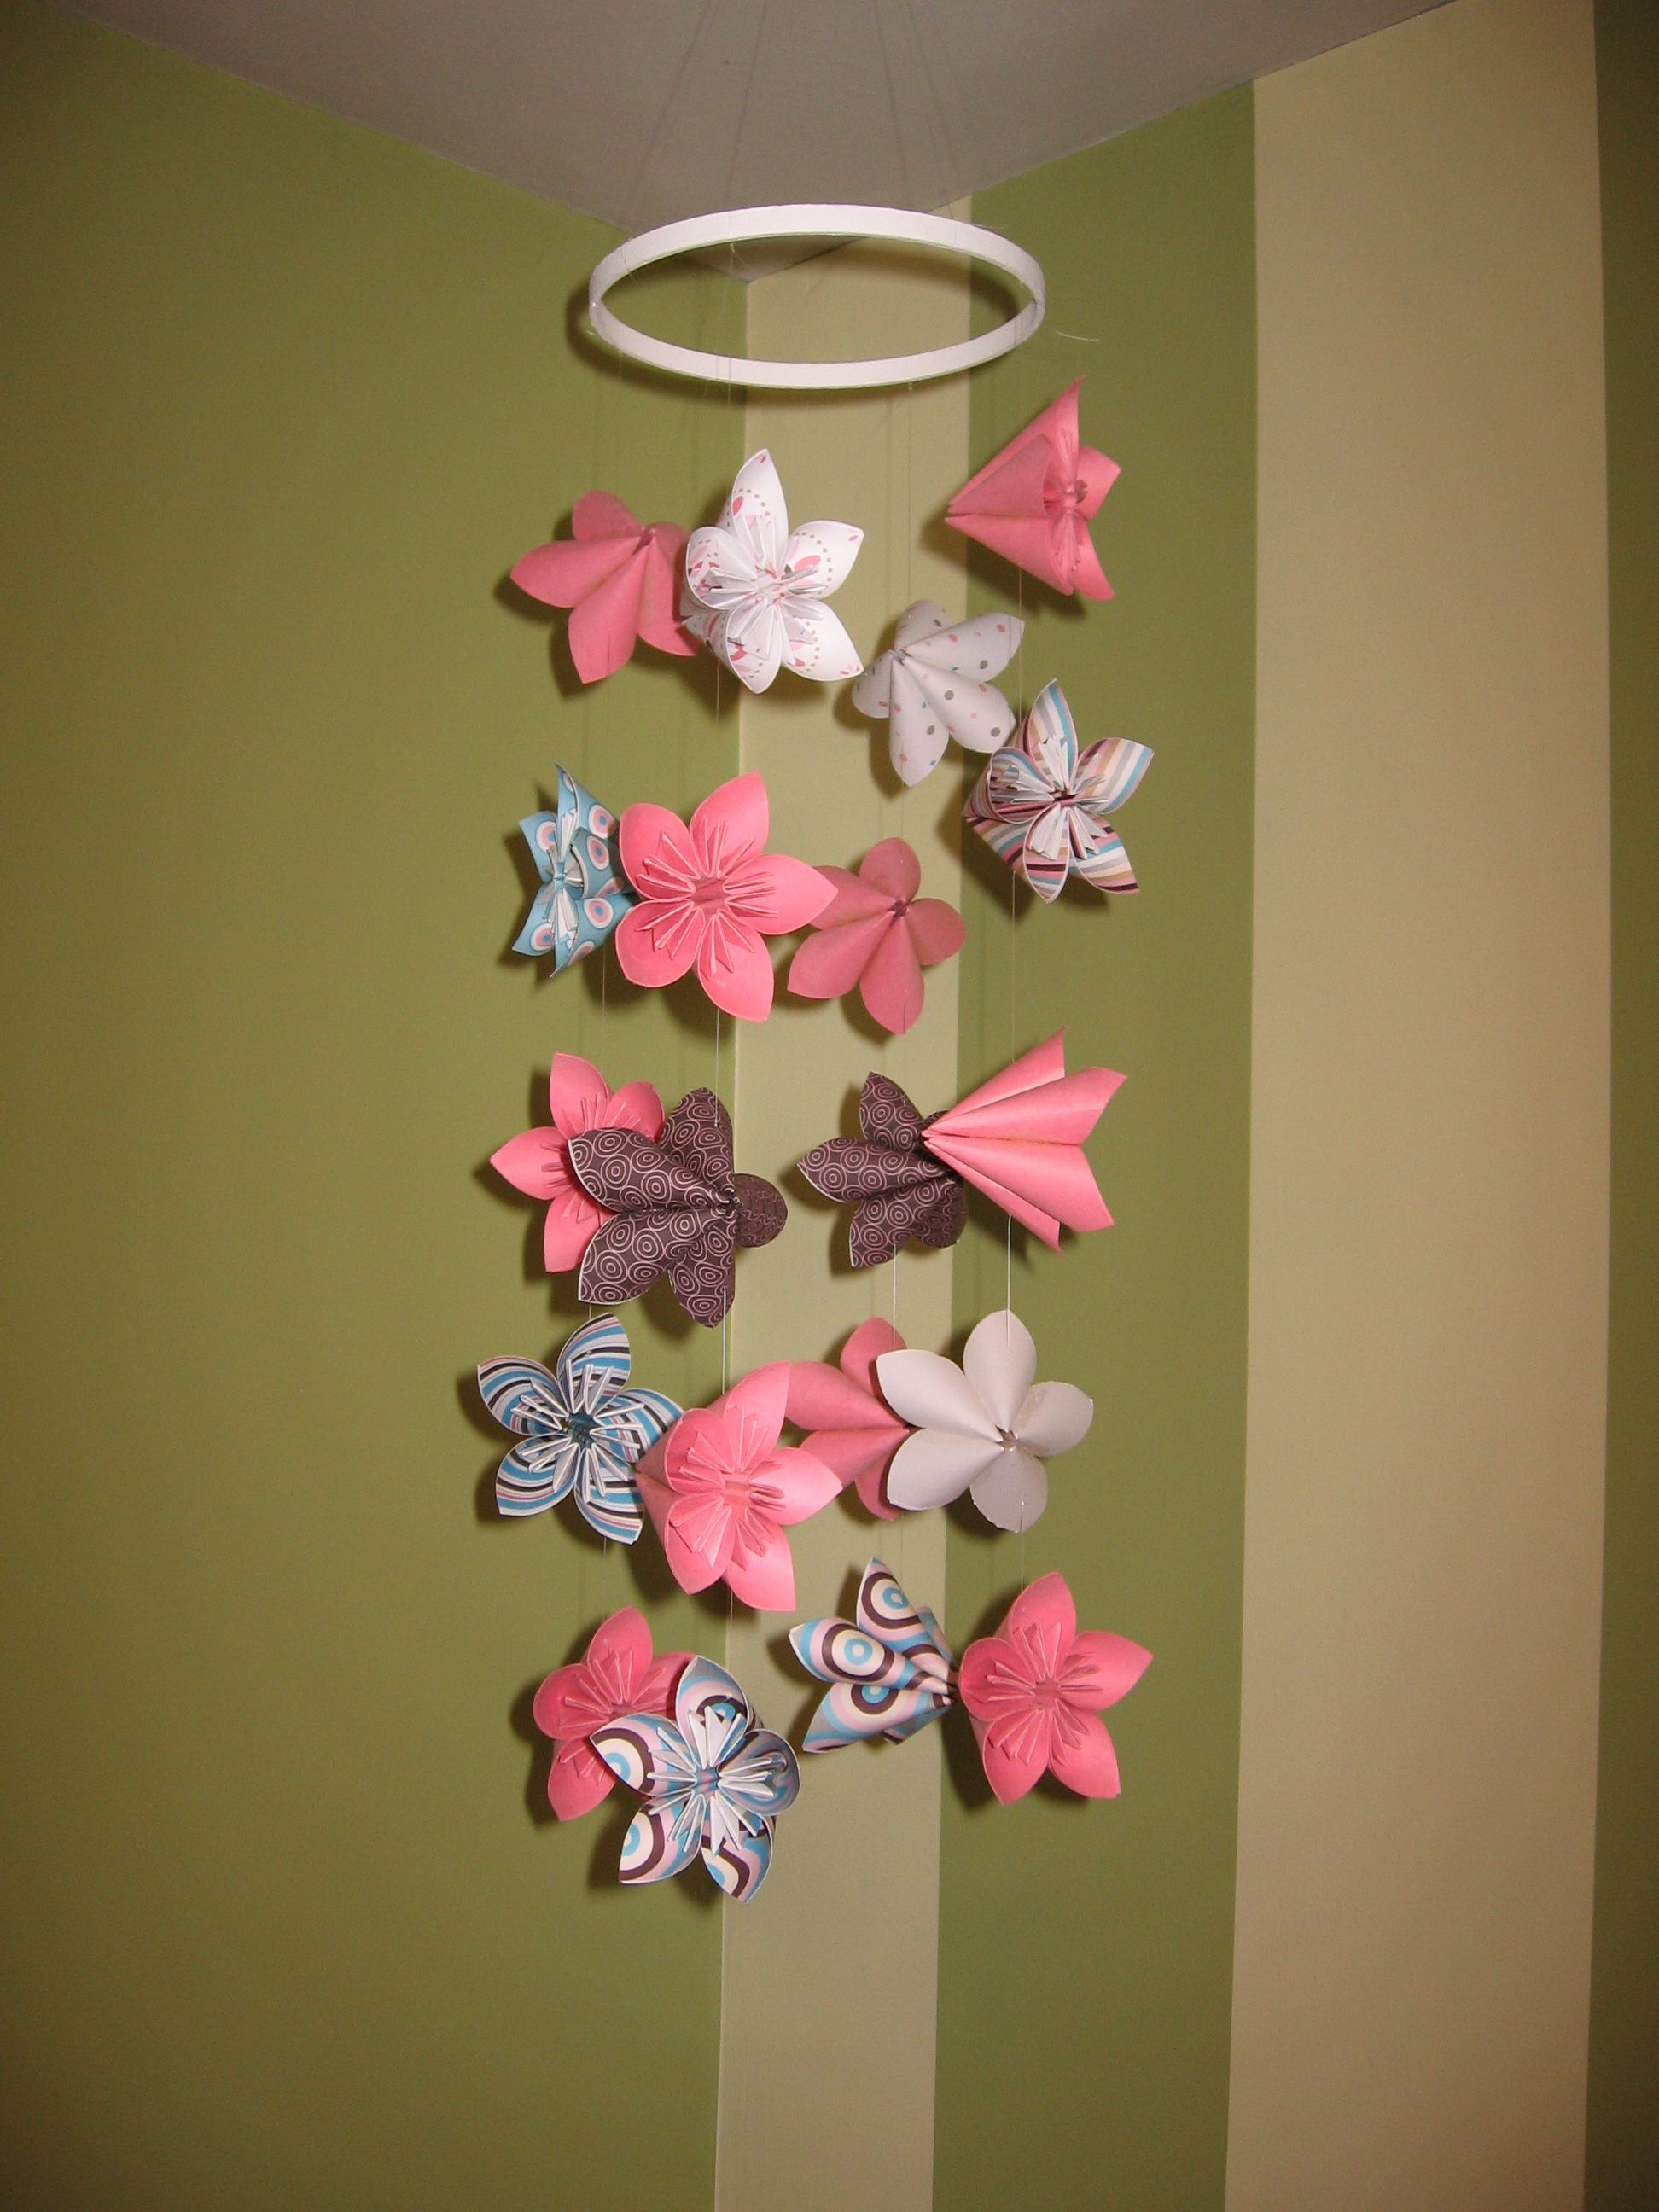 Origami folding flowers stars and animals as nursery room decoration - Origami Flower Baby Mobile Fold The Oragami Flowers Then Use Fishing Line To Tie Together